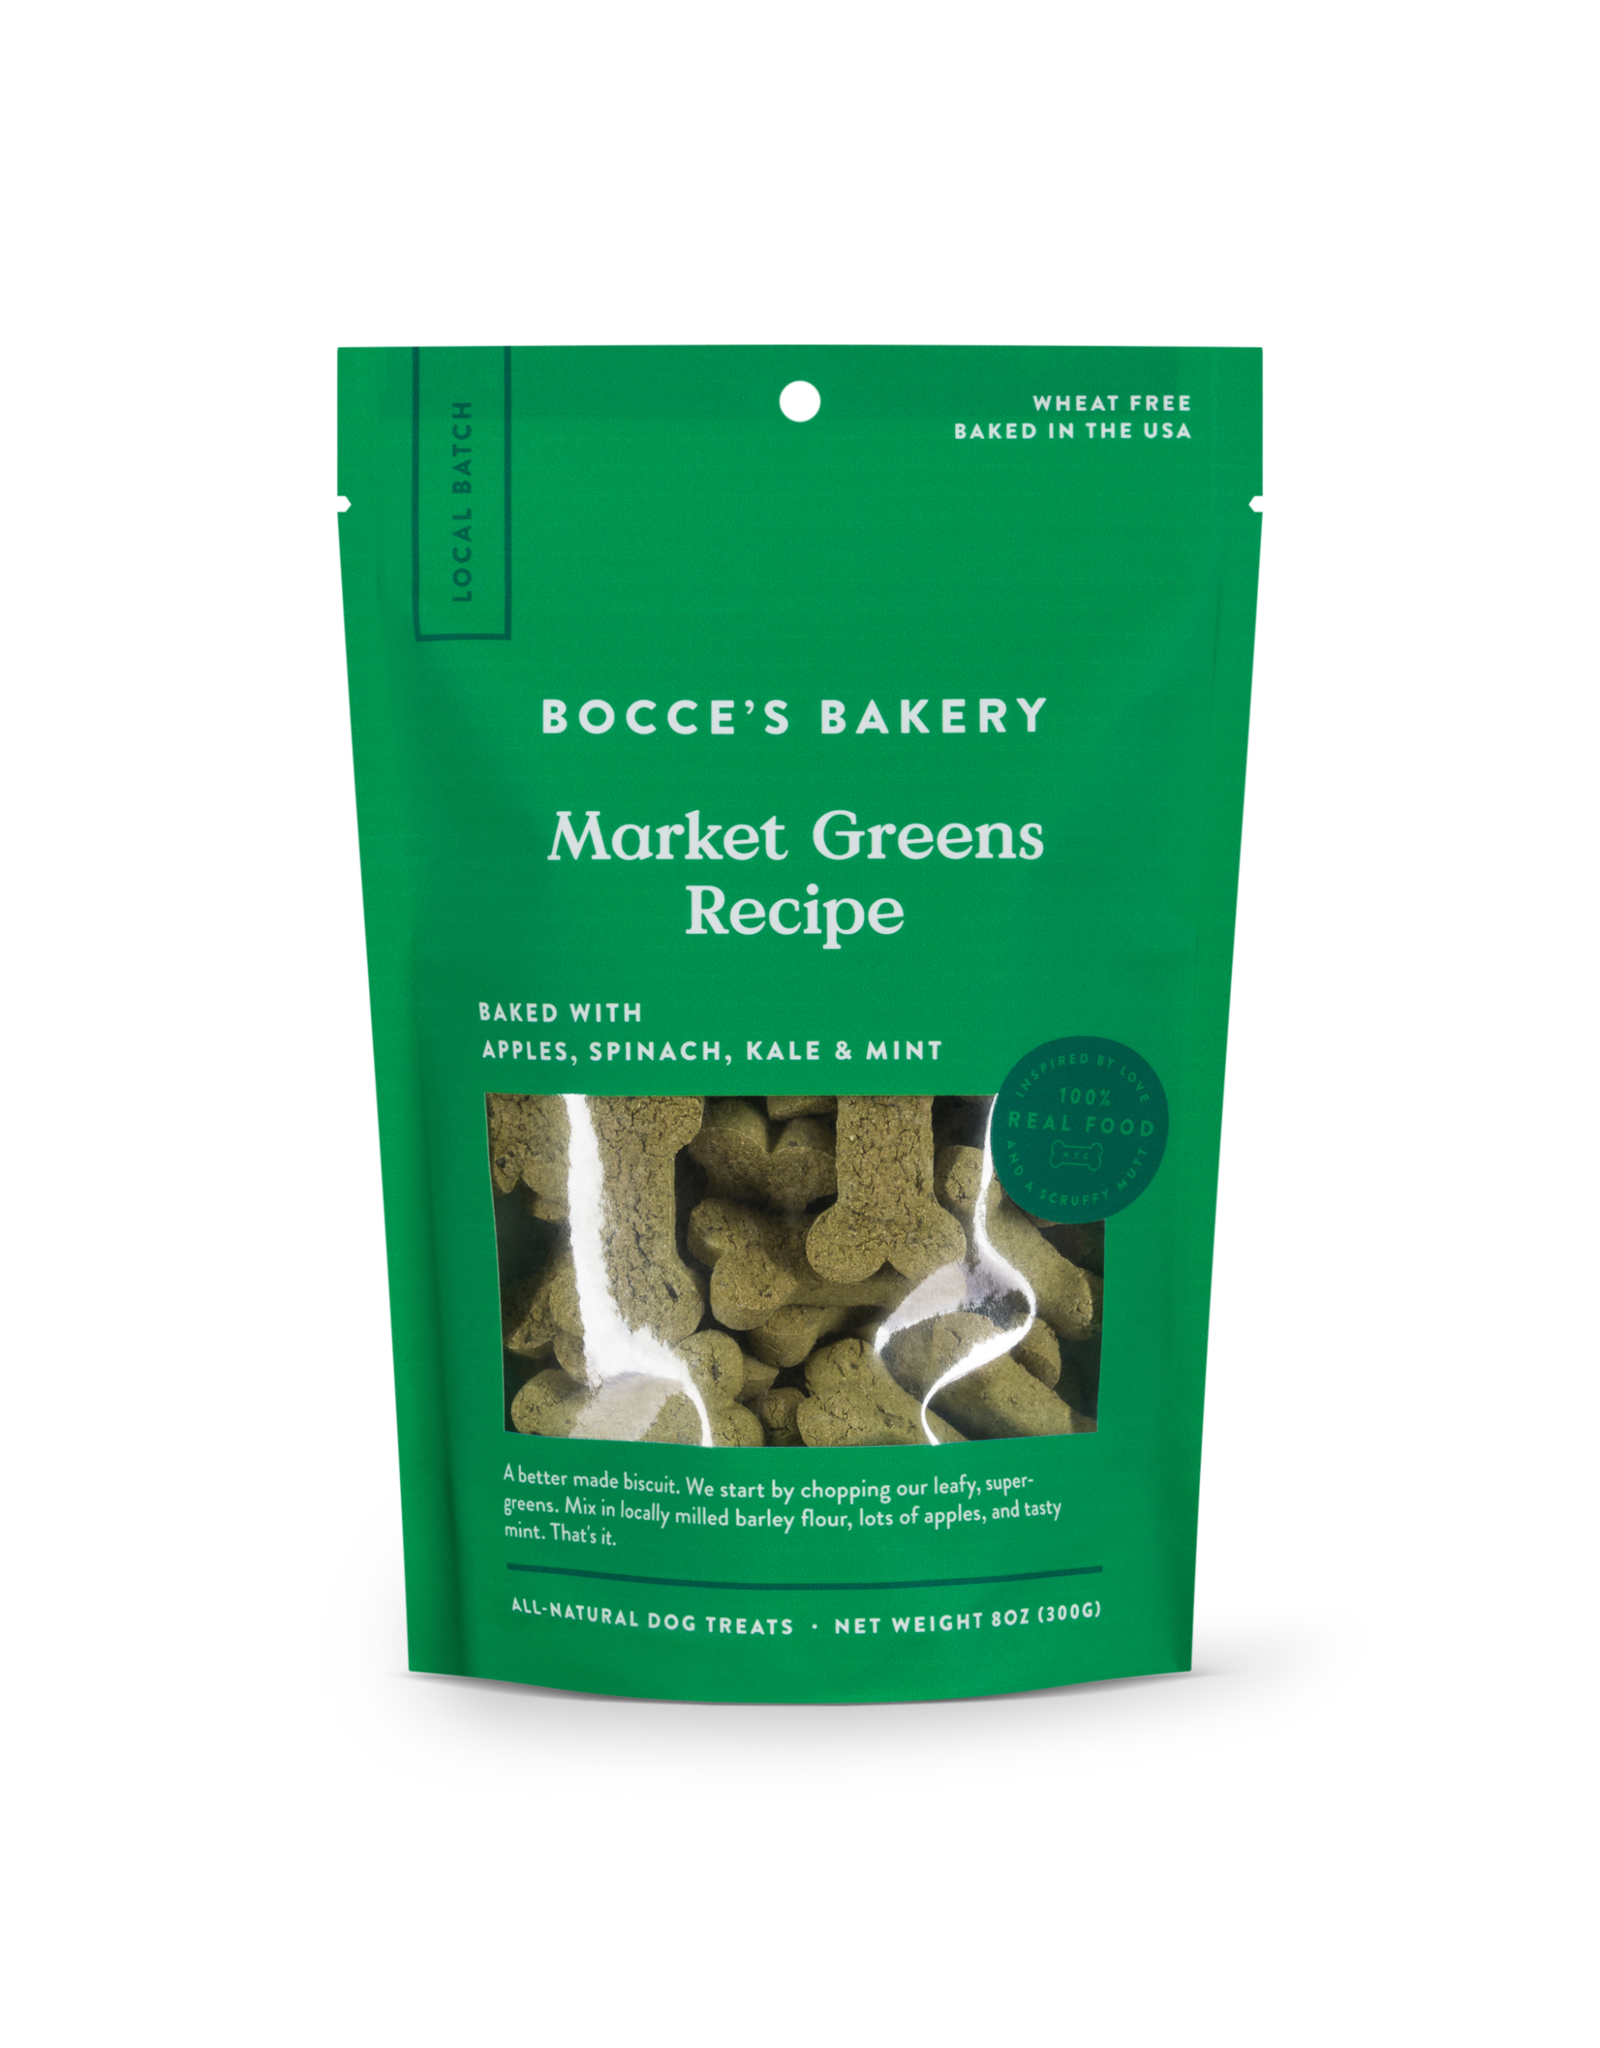 Bocce's Bakery Bocce's Bakery Small Batch Market Greens Biscuits